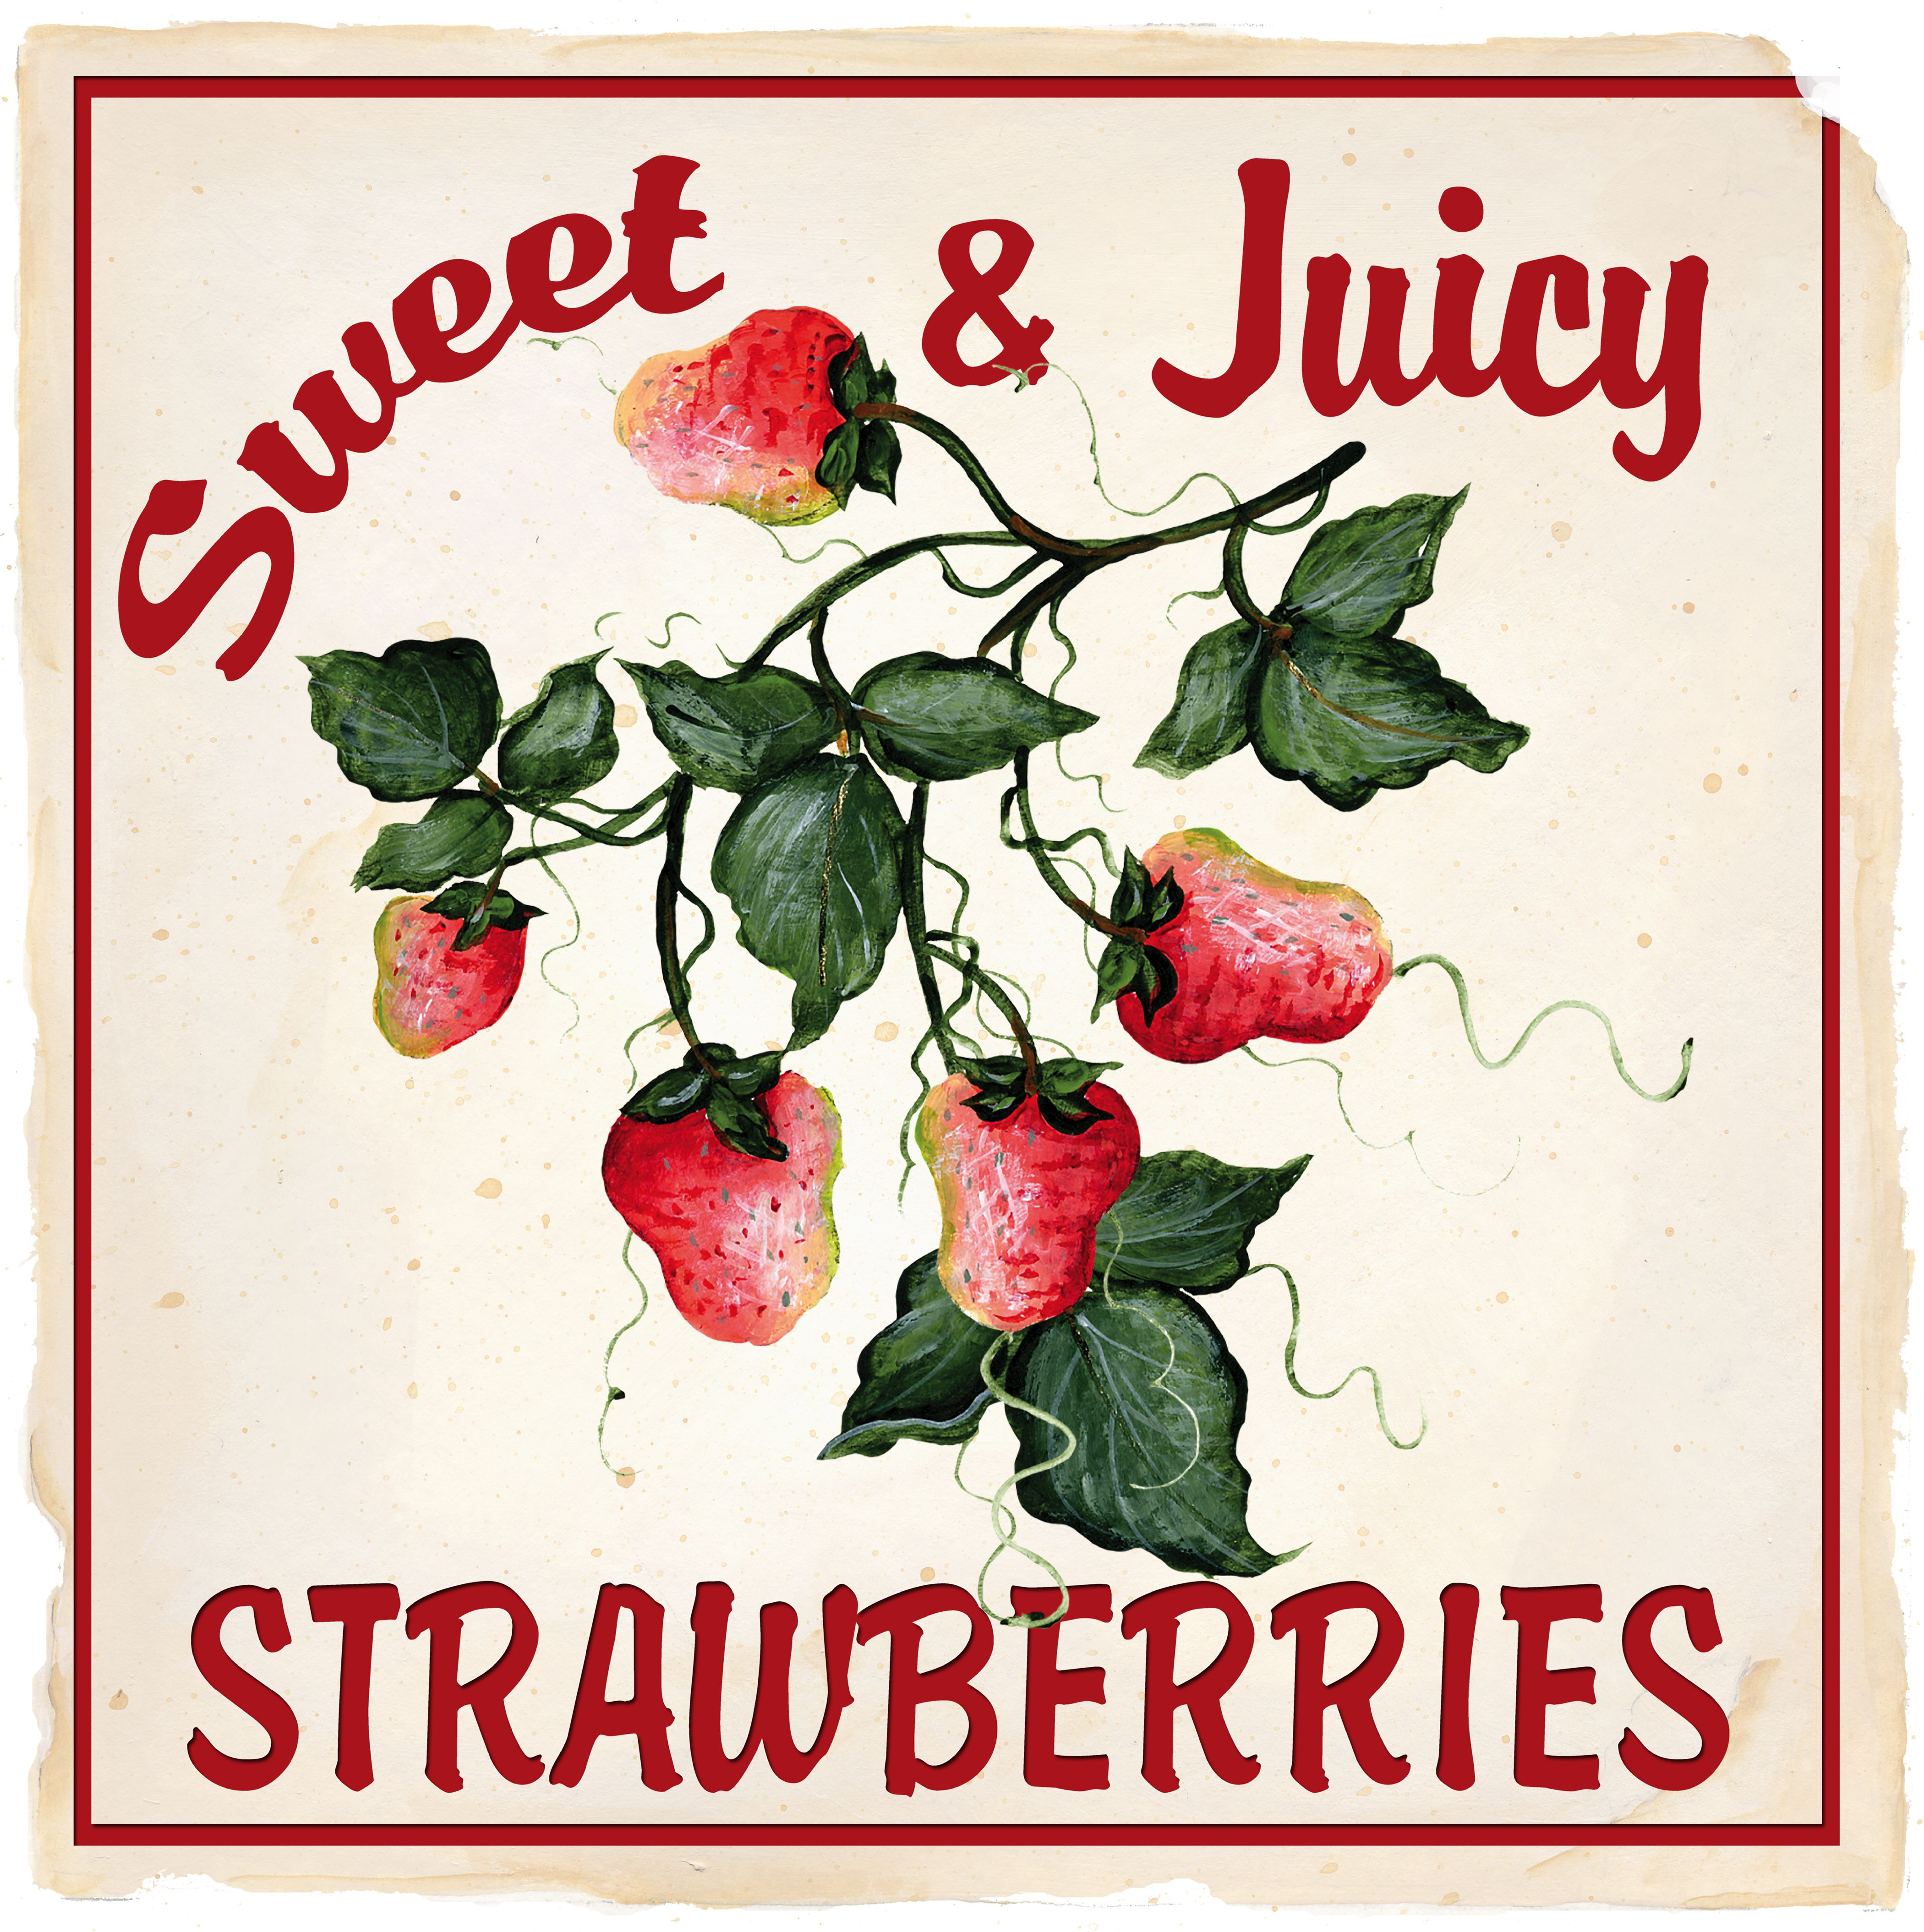 STRAWBERRIES BY KATHY HATCH